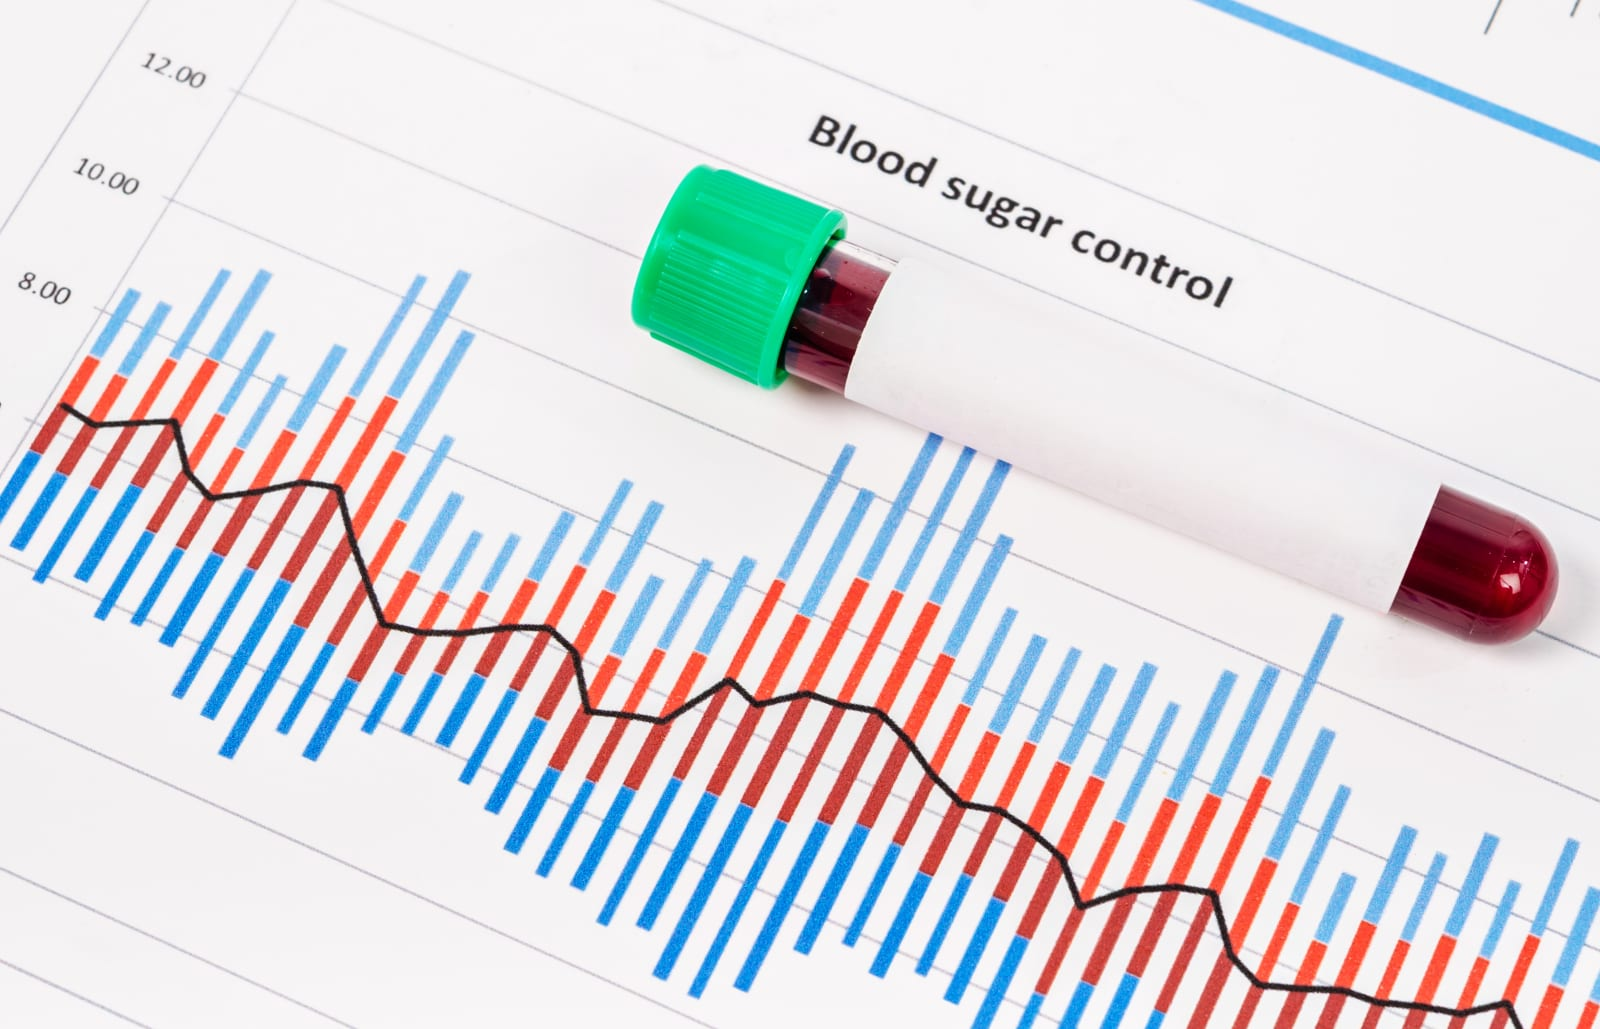 Sample blood for screening diabetic test